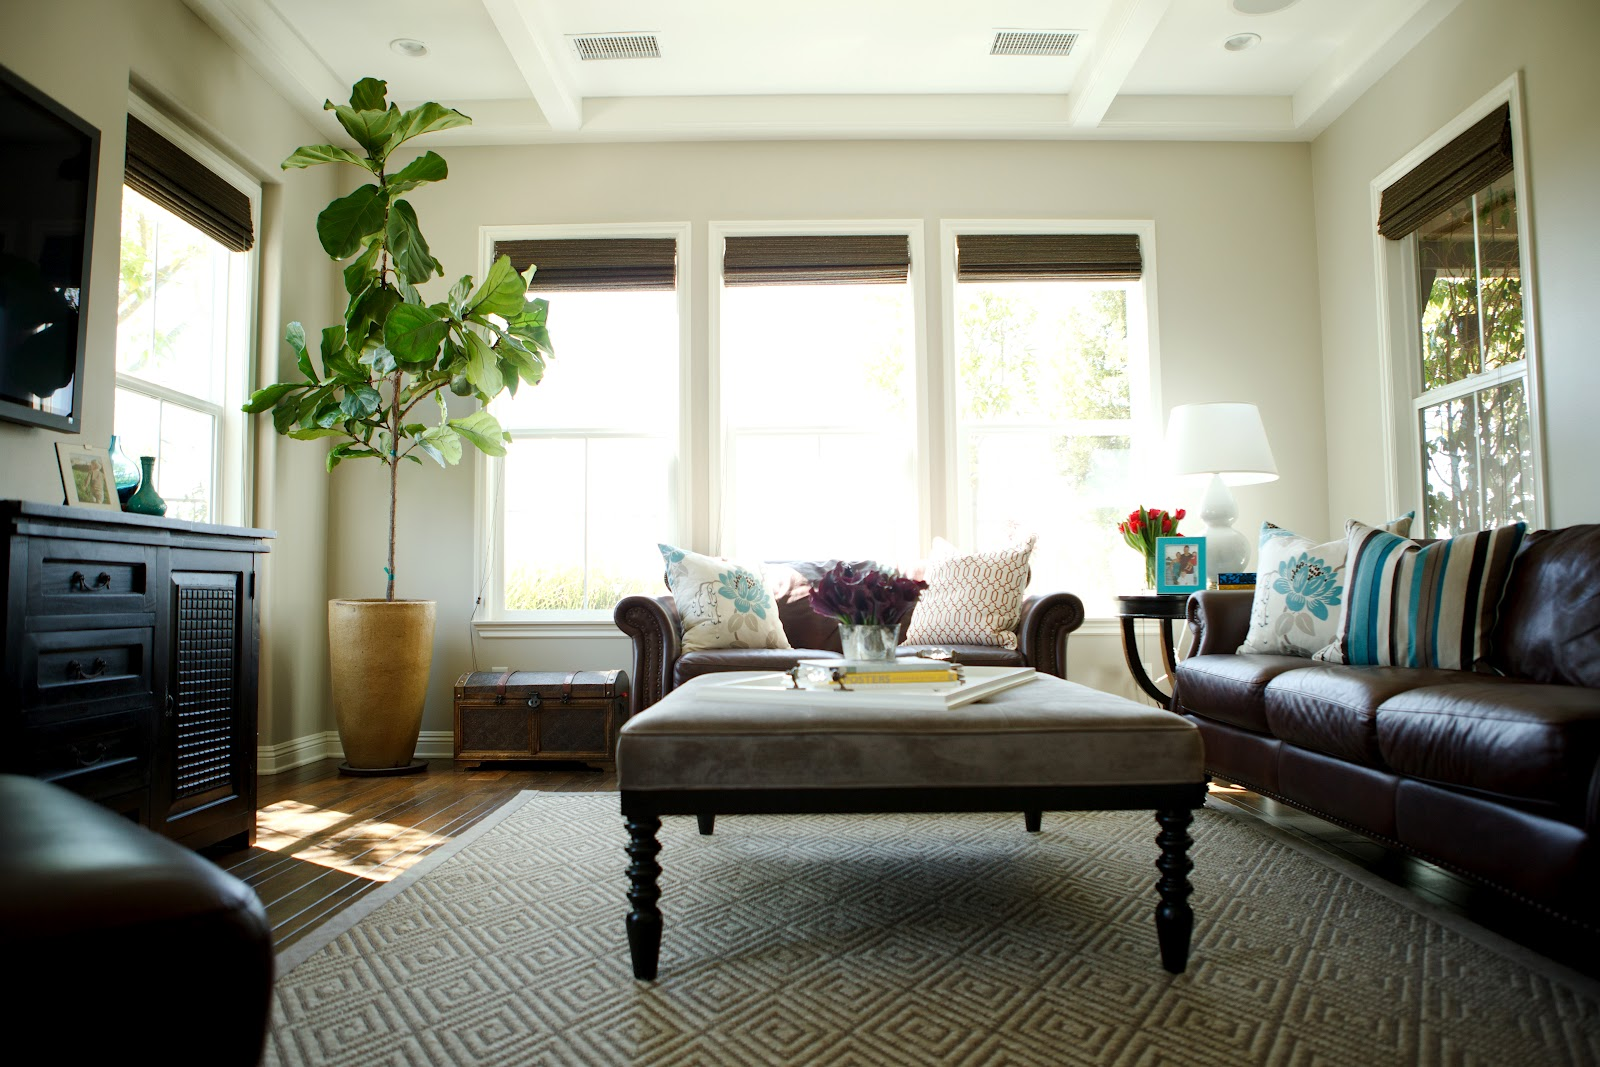 Bdg style may 2012 for Kids living room ideas